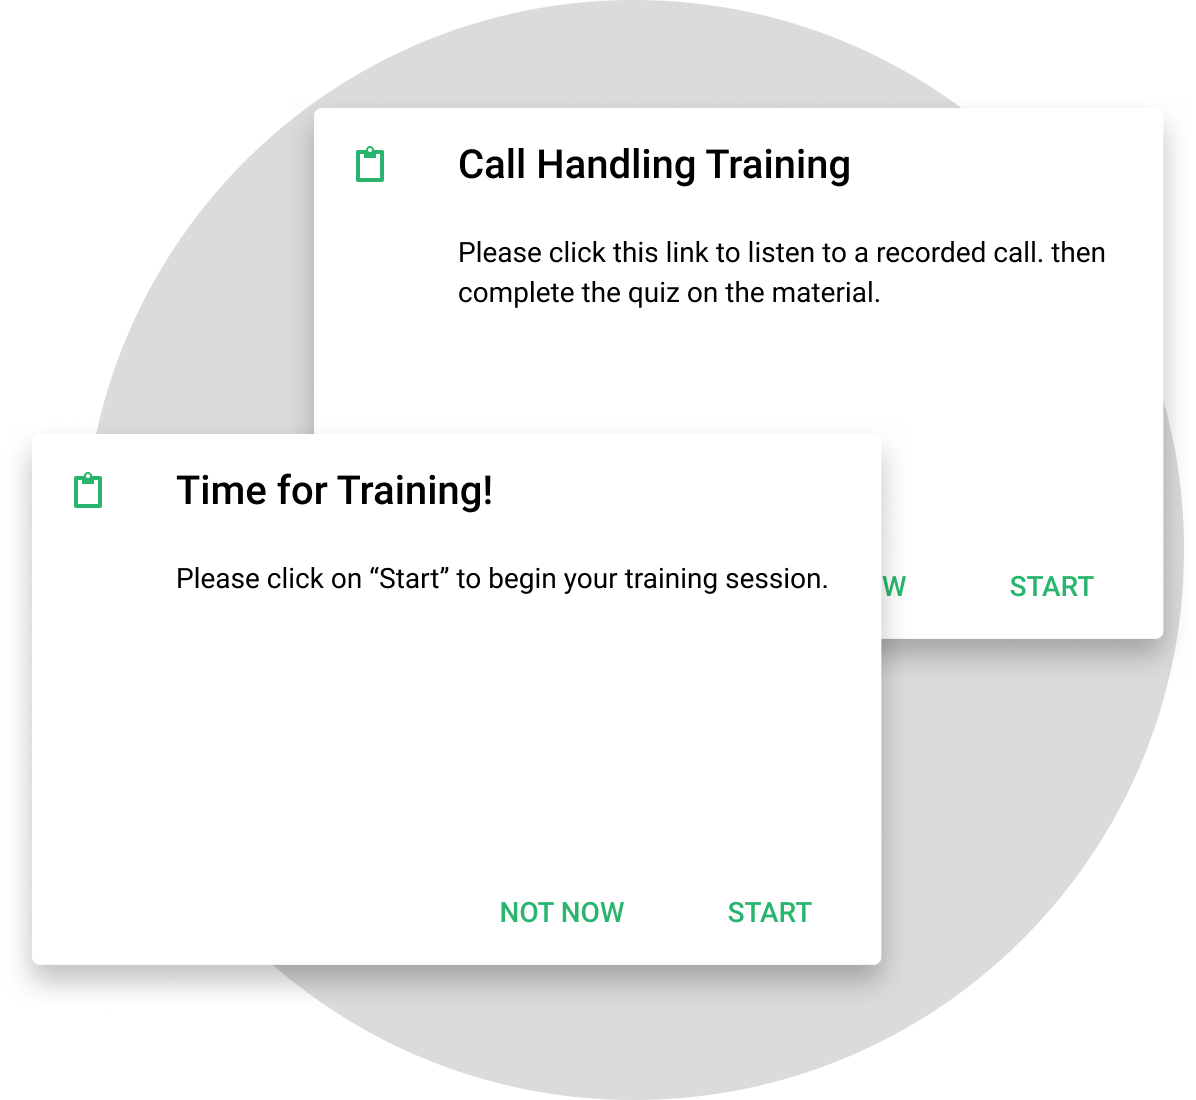 call handling and time for training notification